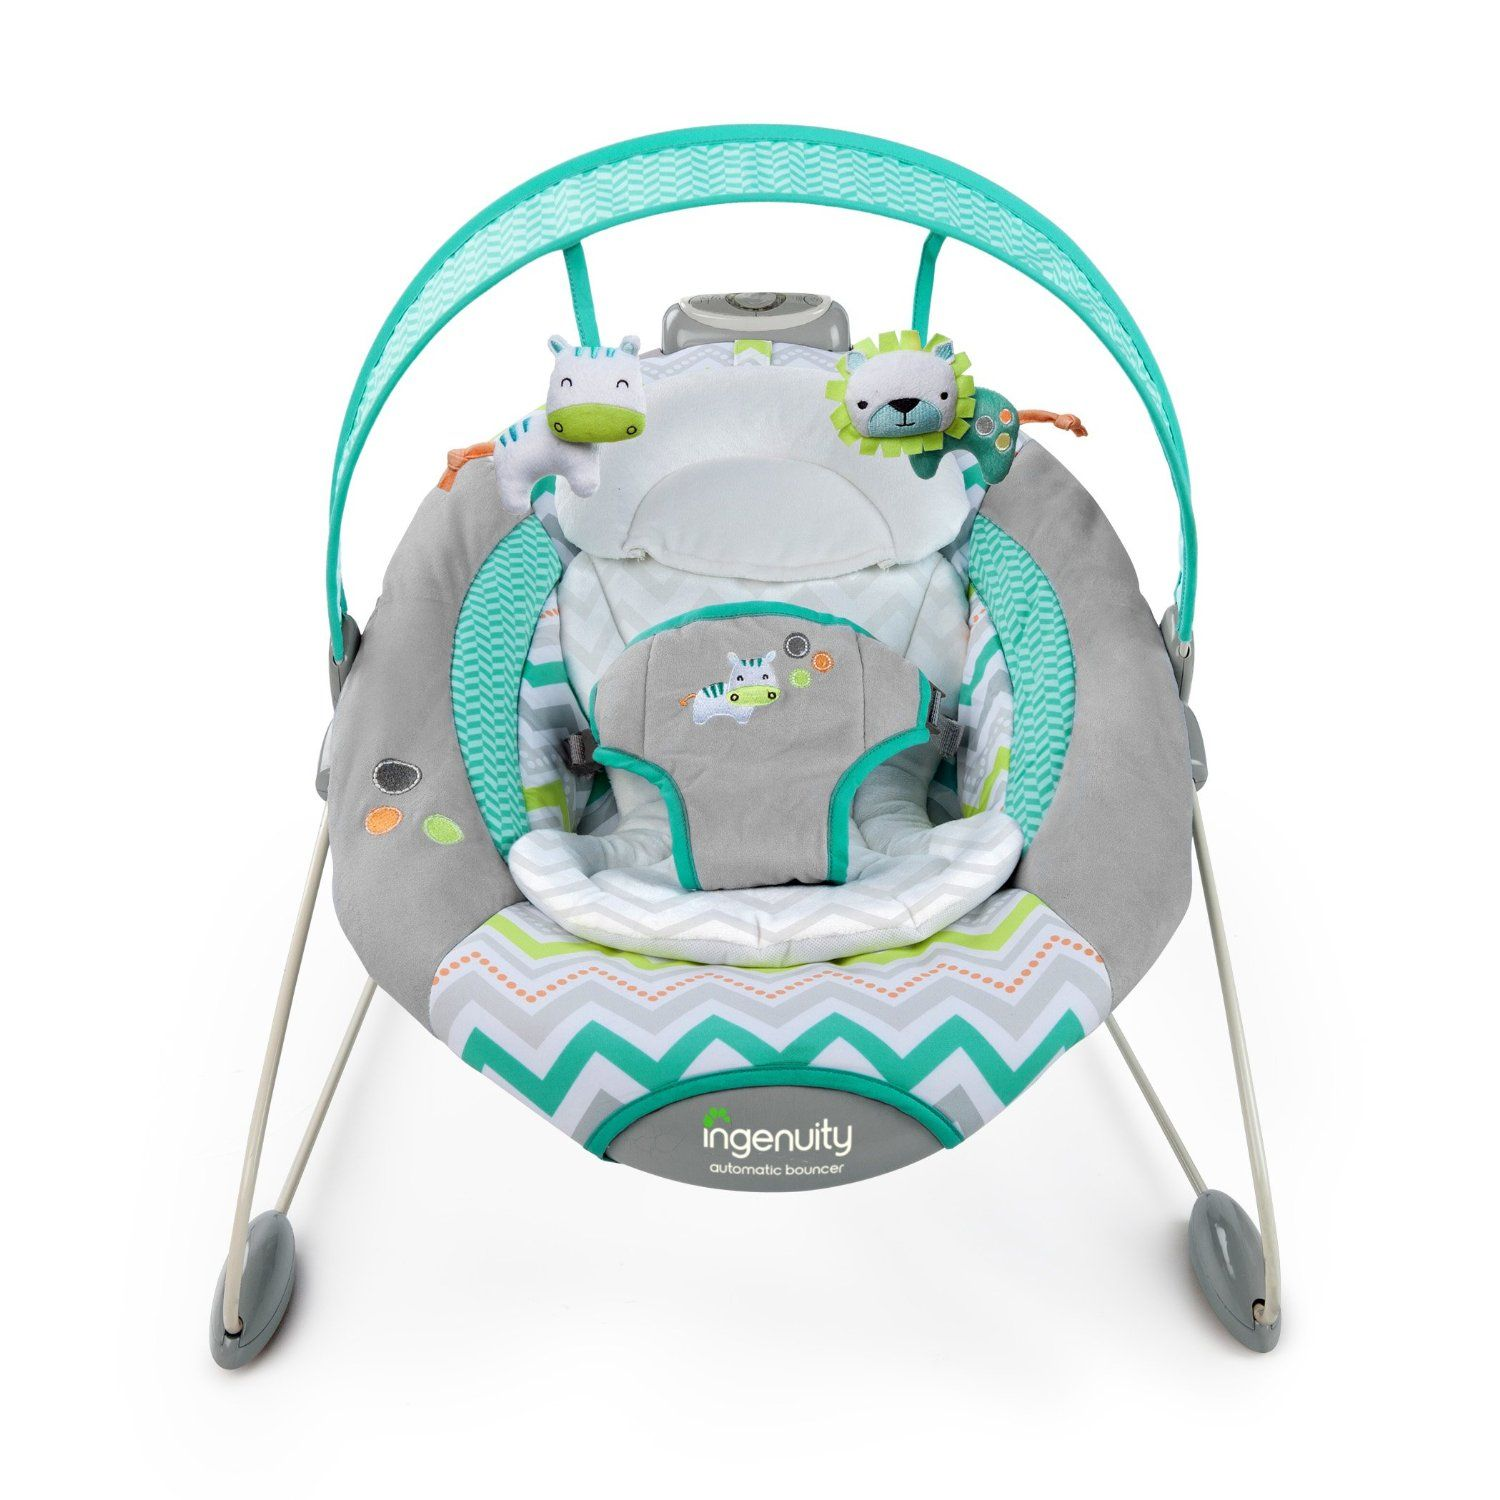 Ingenuity 10209 Smartbounce Babywippe Babywippe Test